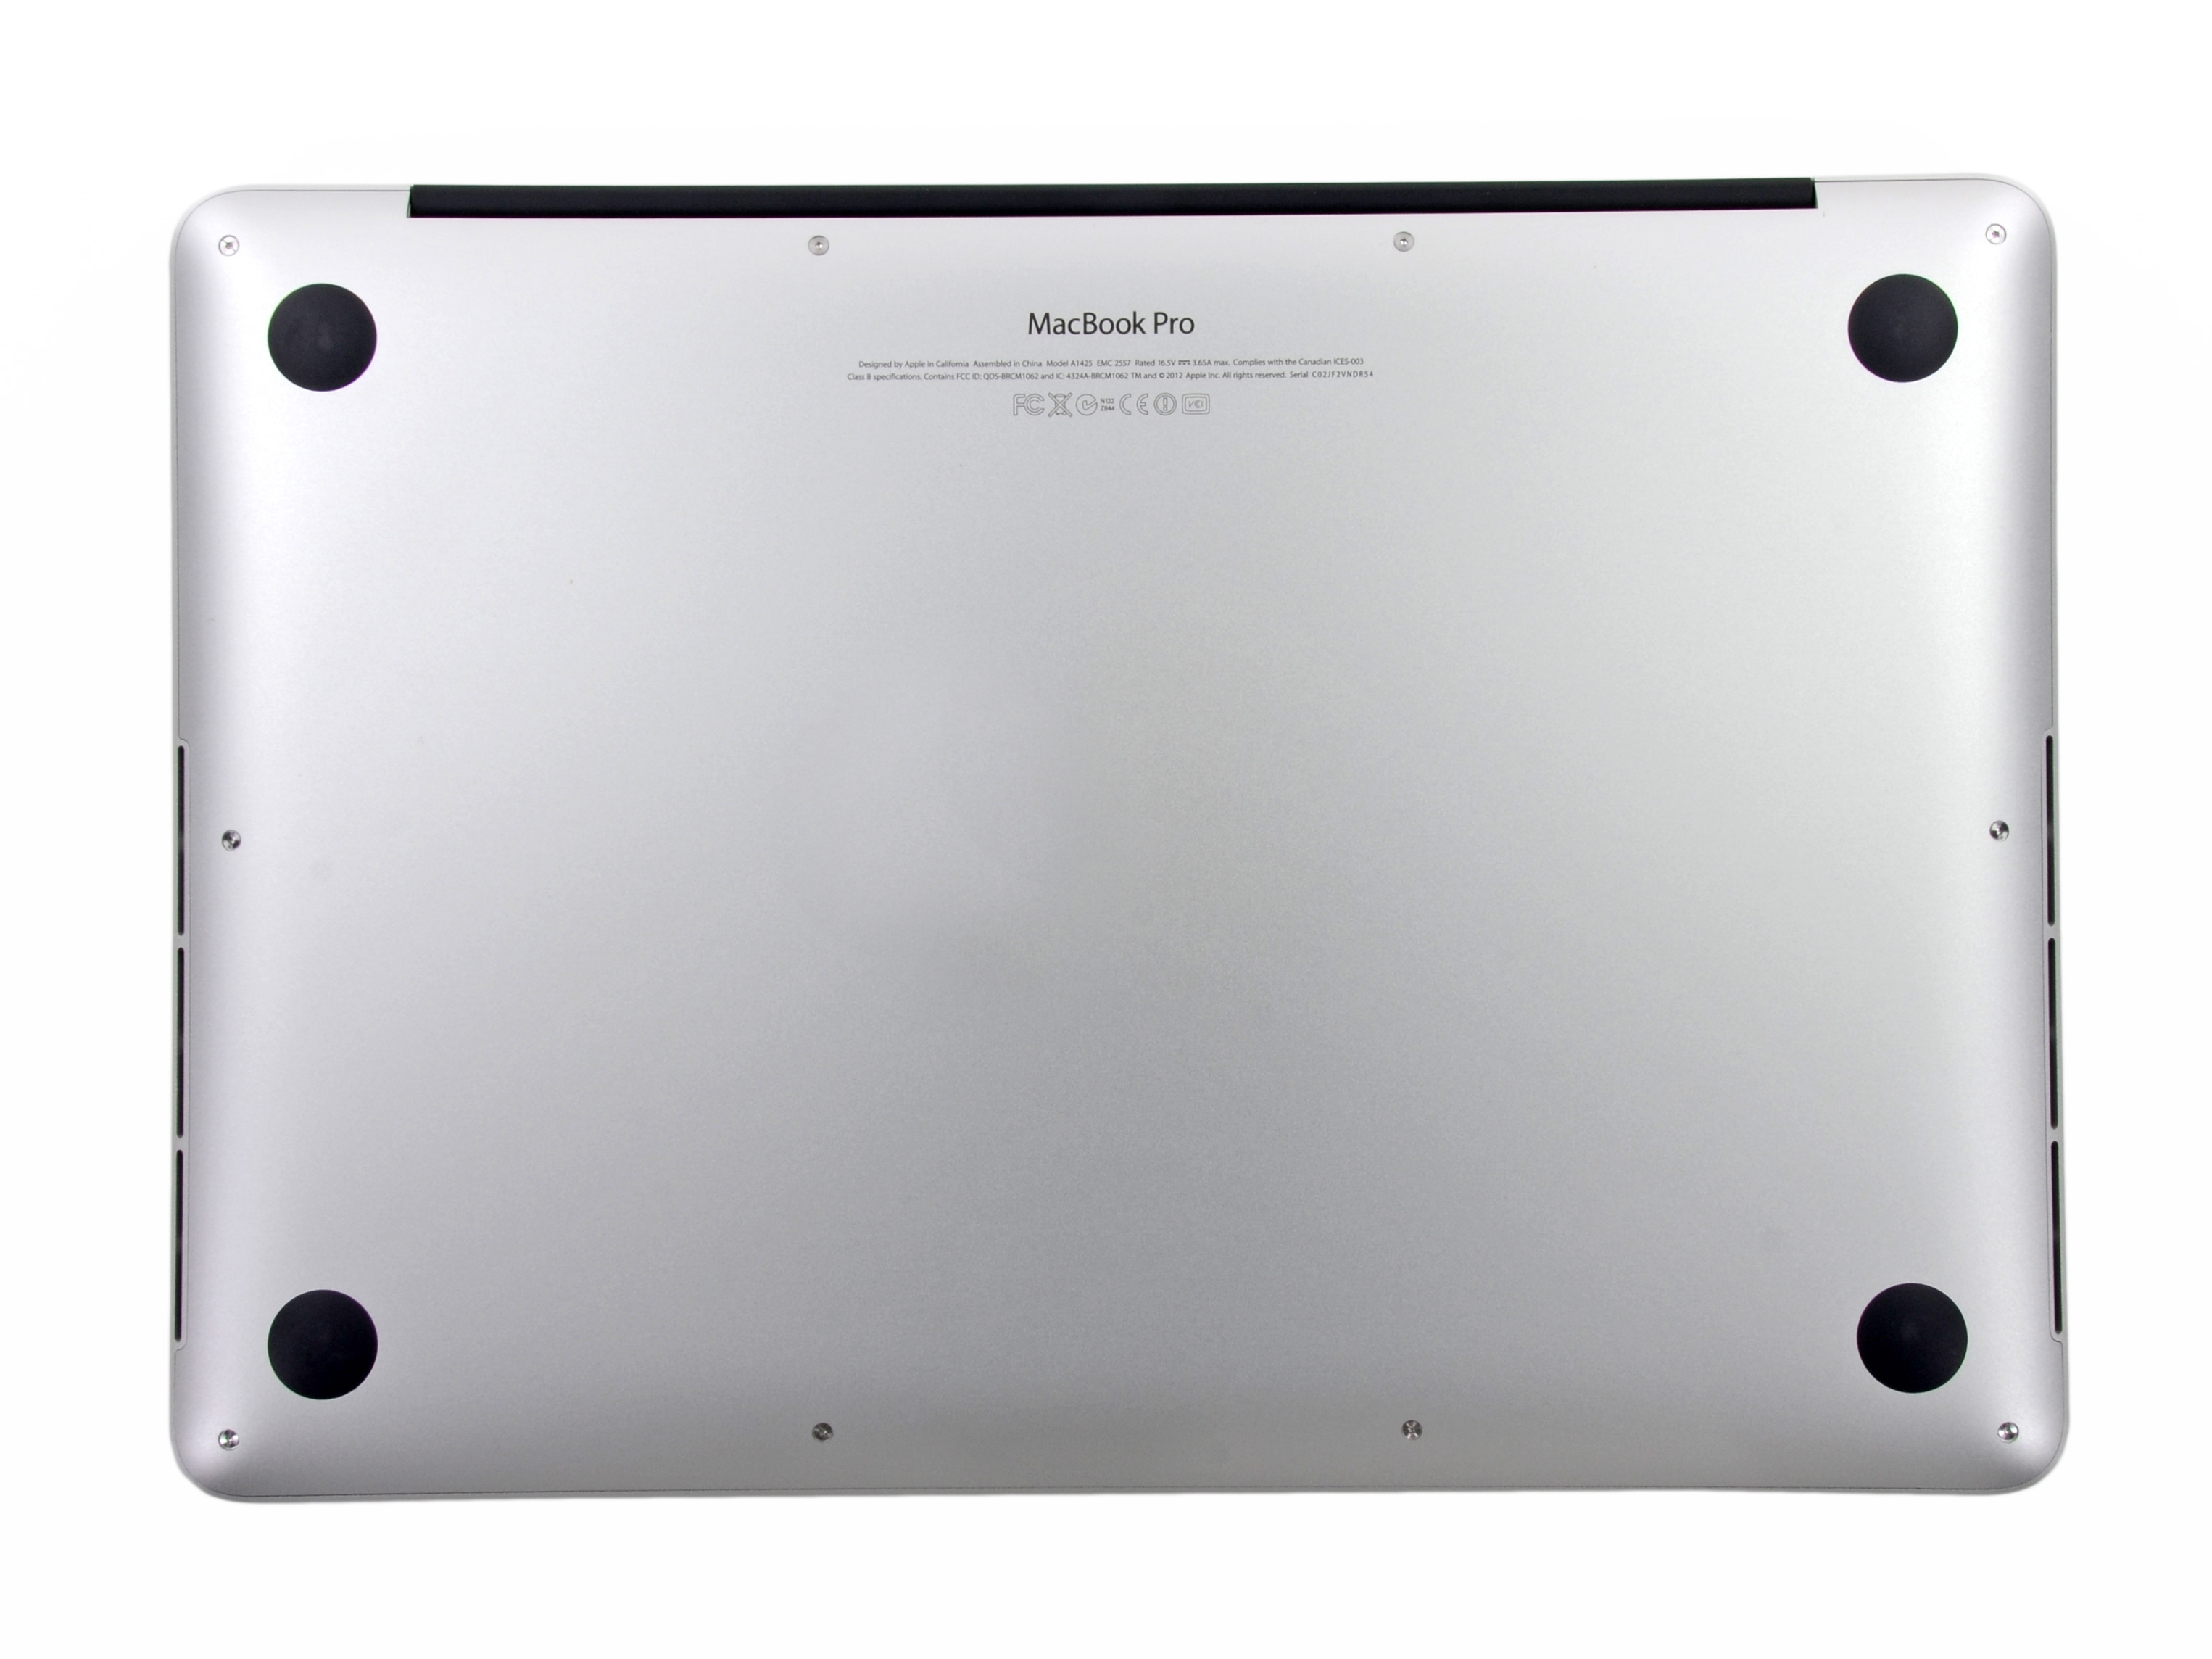 Macbook Pro 13 Quot Retina Display Early 2013 Lower Case